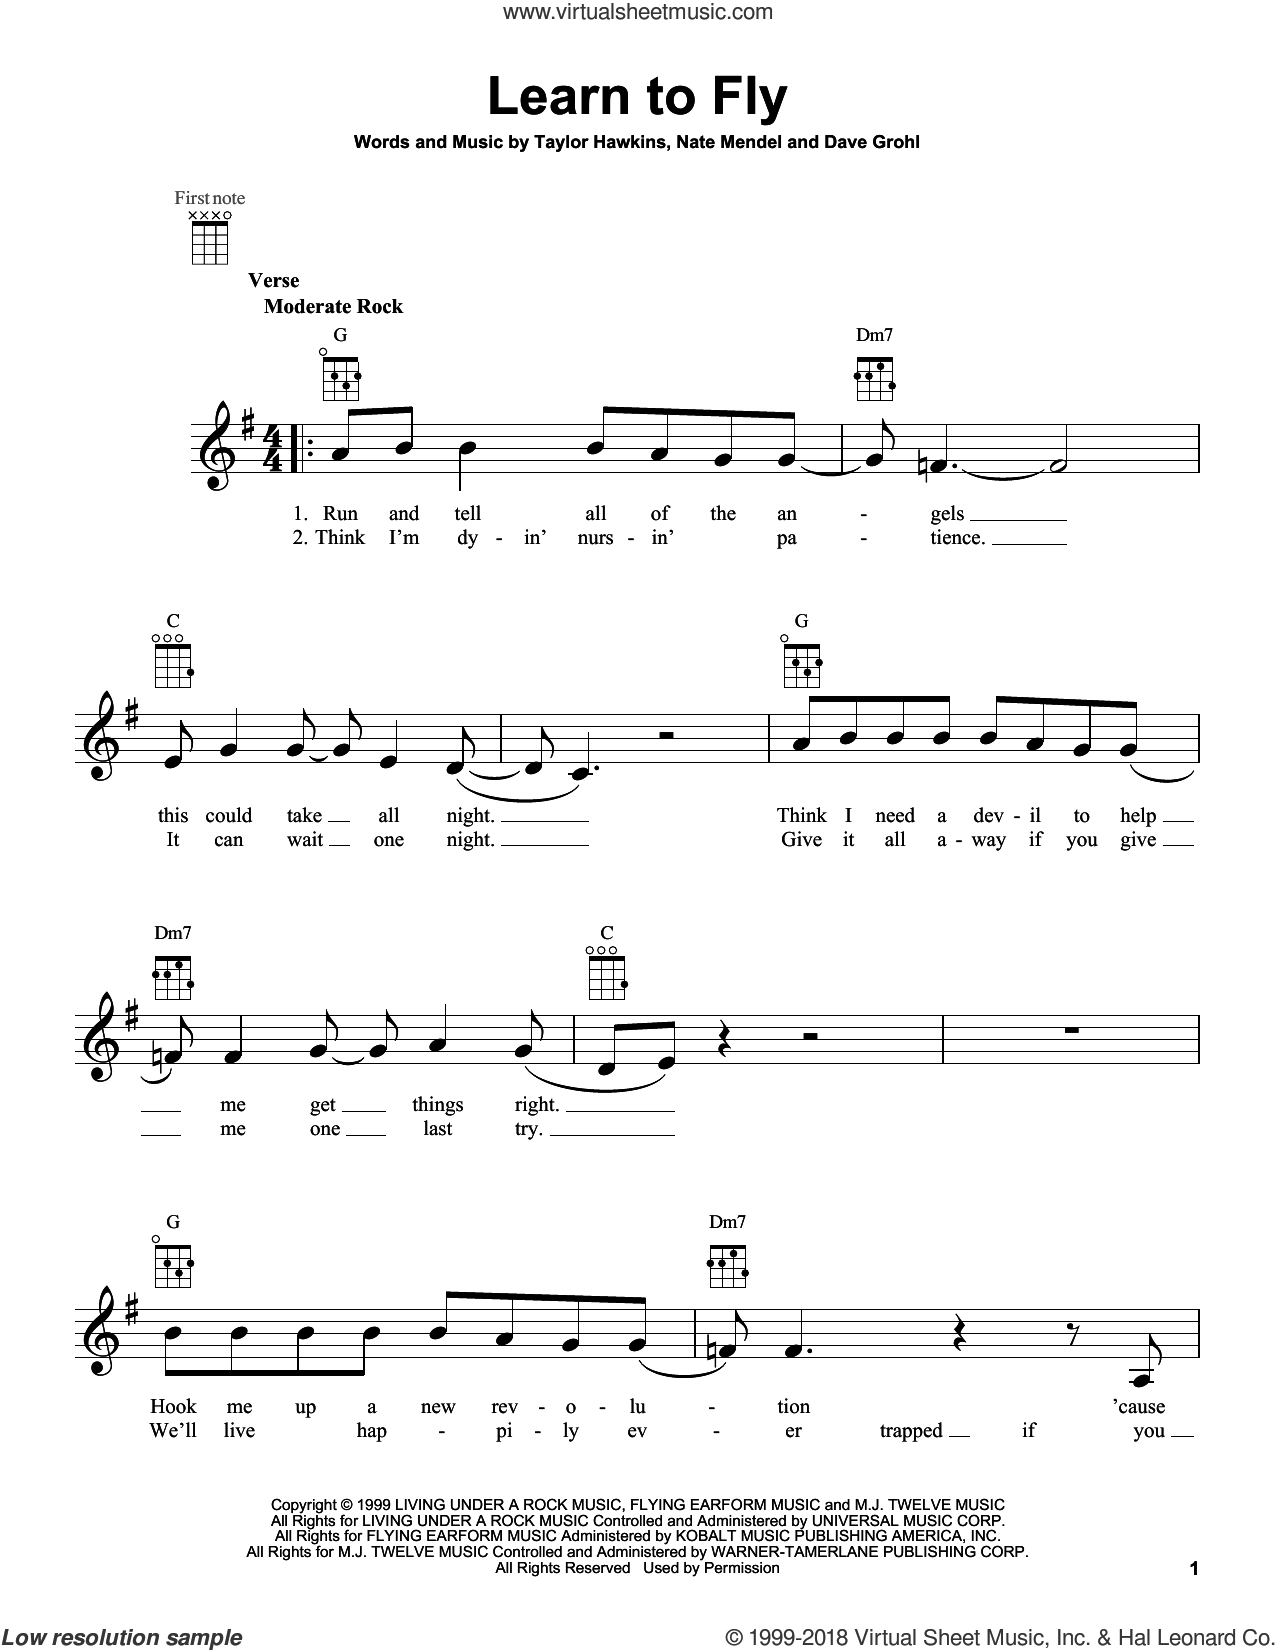 Learn To Fly sheet music for ukulele by Foo Fighters. Score Image Preview.